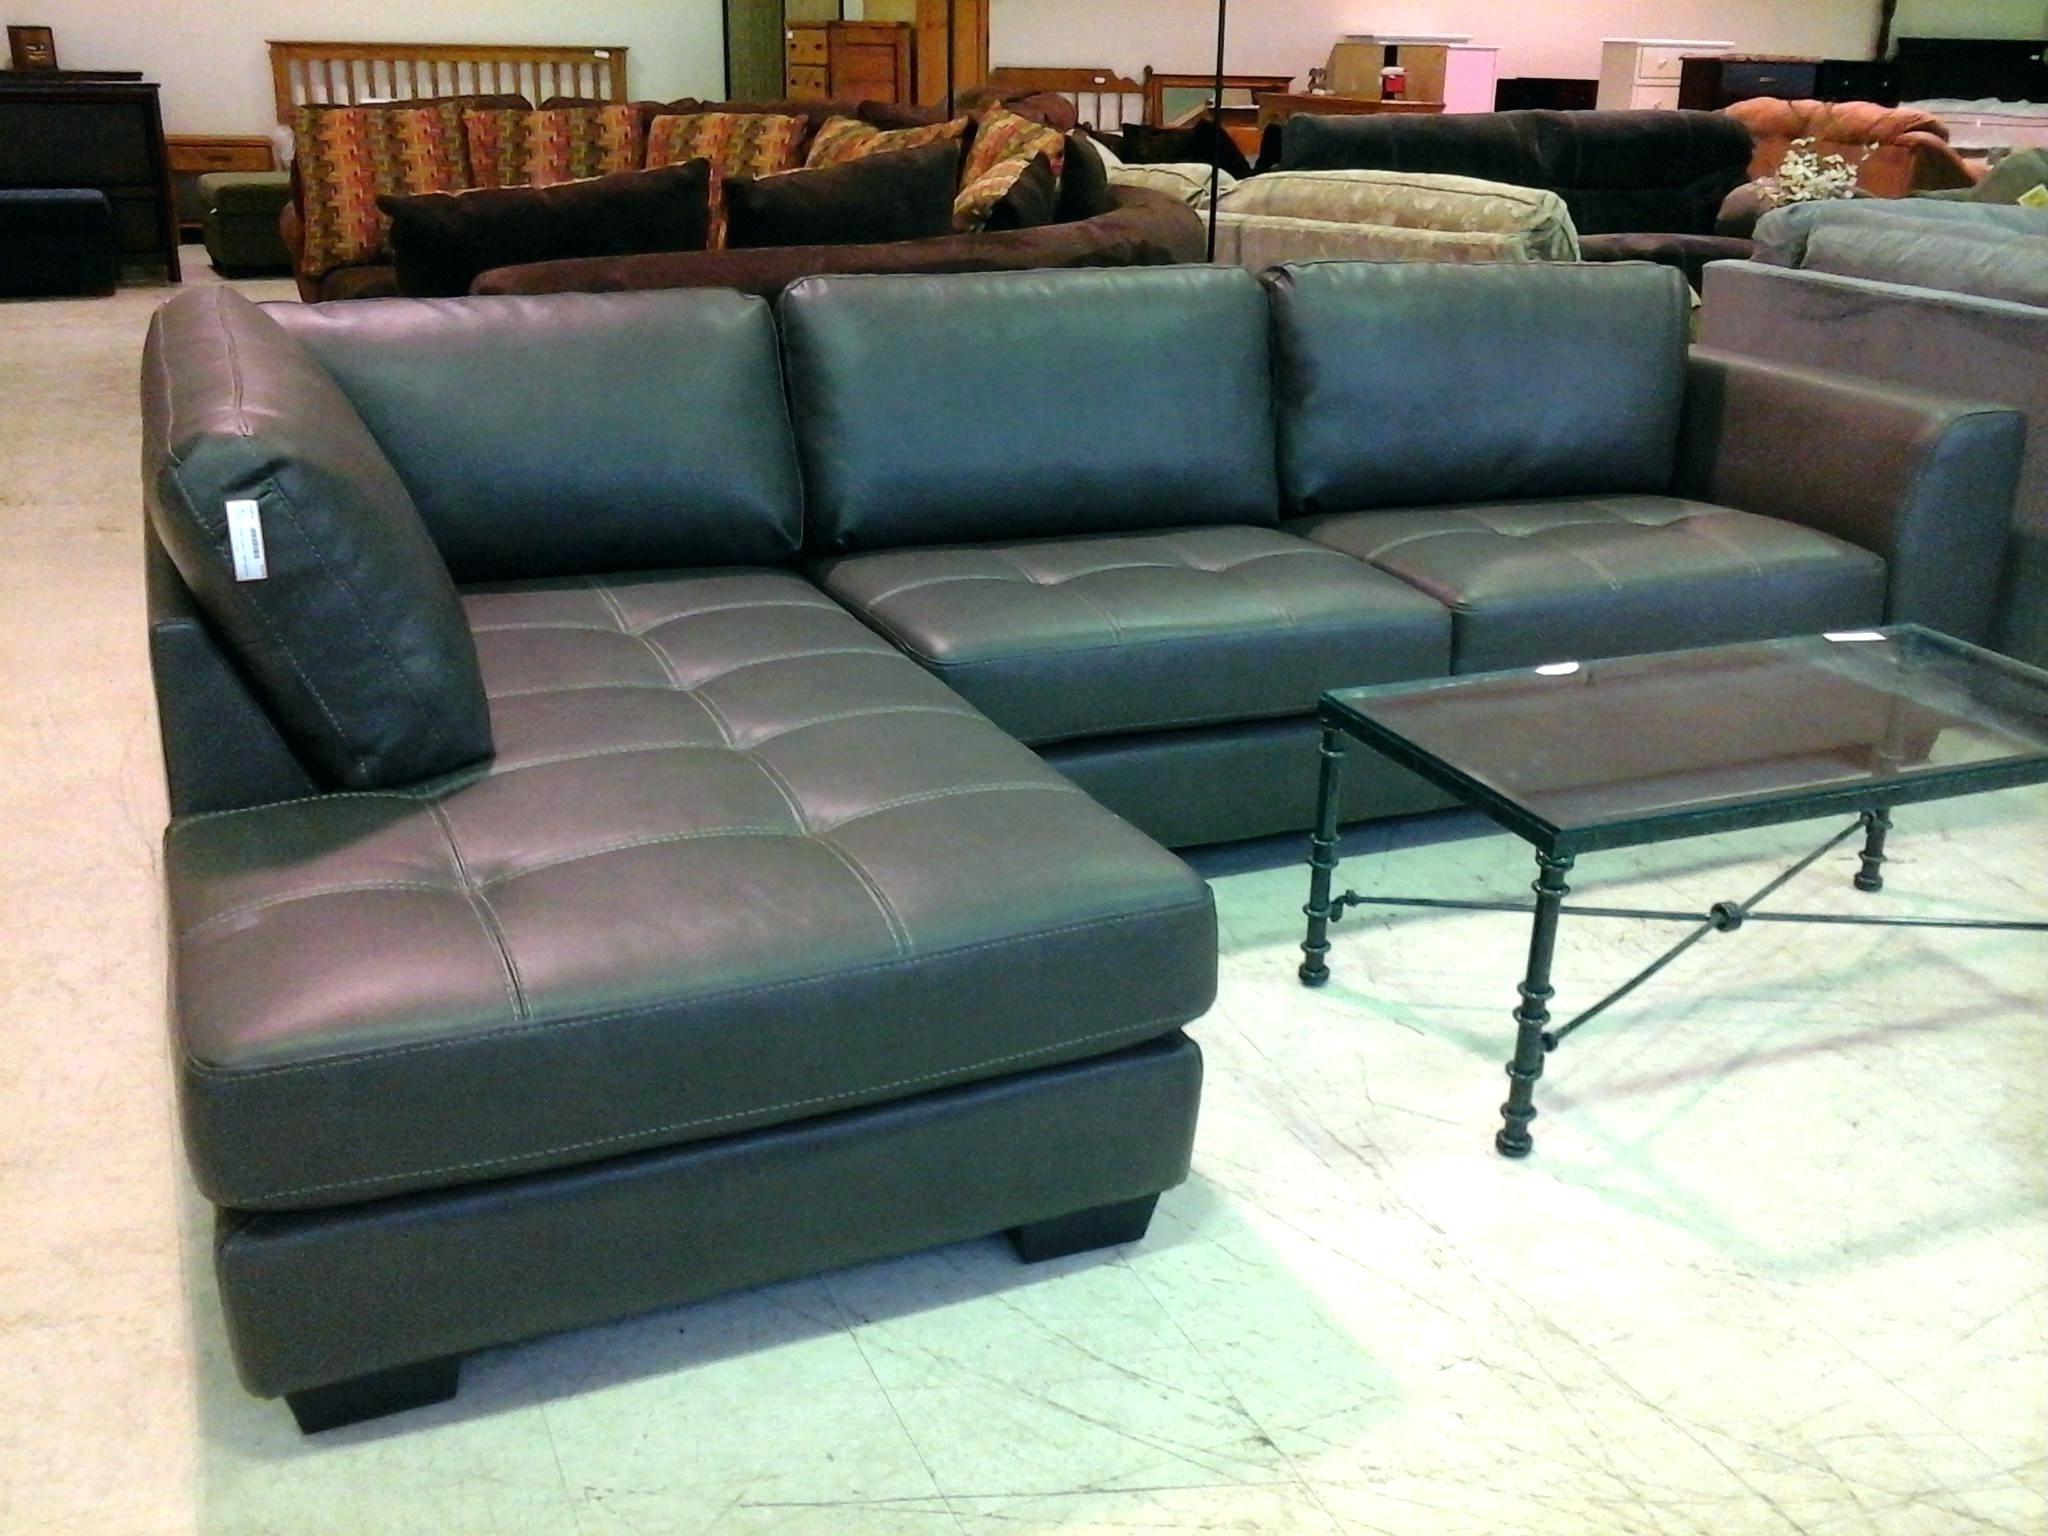 sears clearwater sofa sectional powder blue fabric bed explore photos of craftsman sofas showing 15 20 trendy natuzzi grey jasonatavastrealty pertaining to gallery